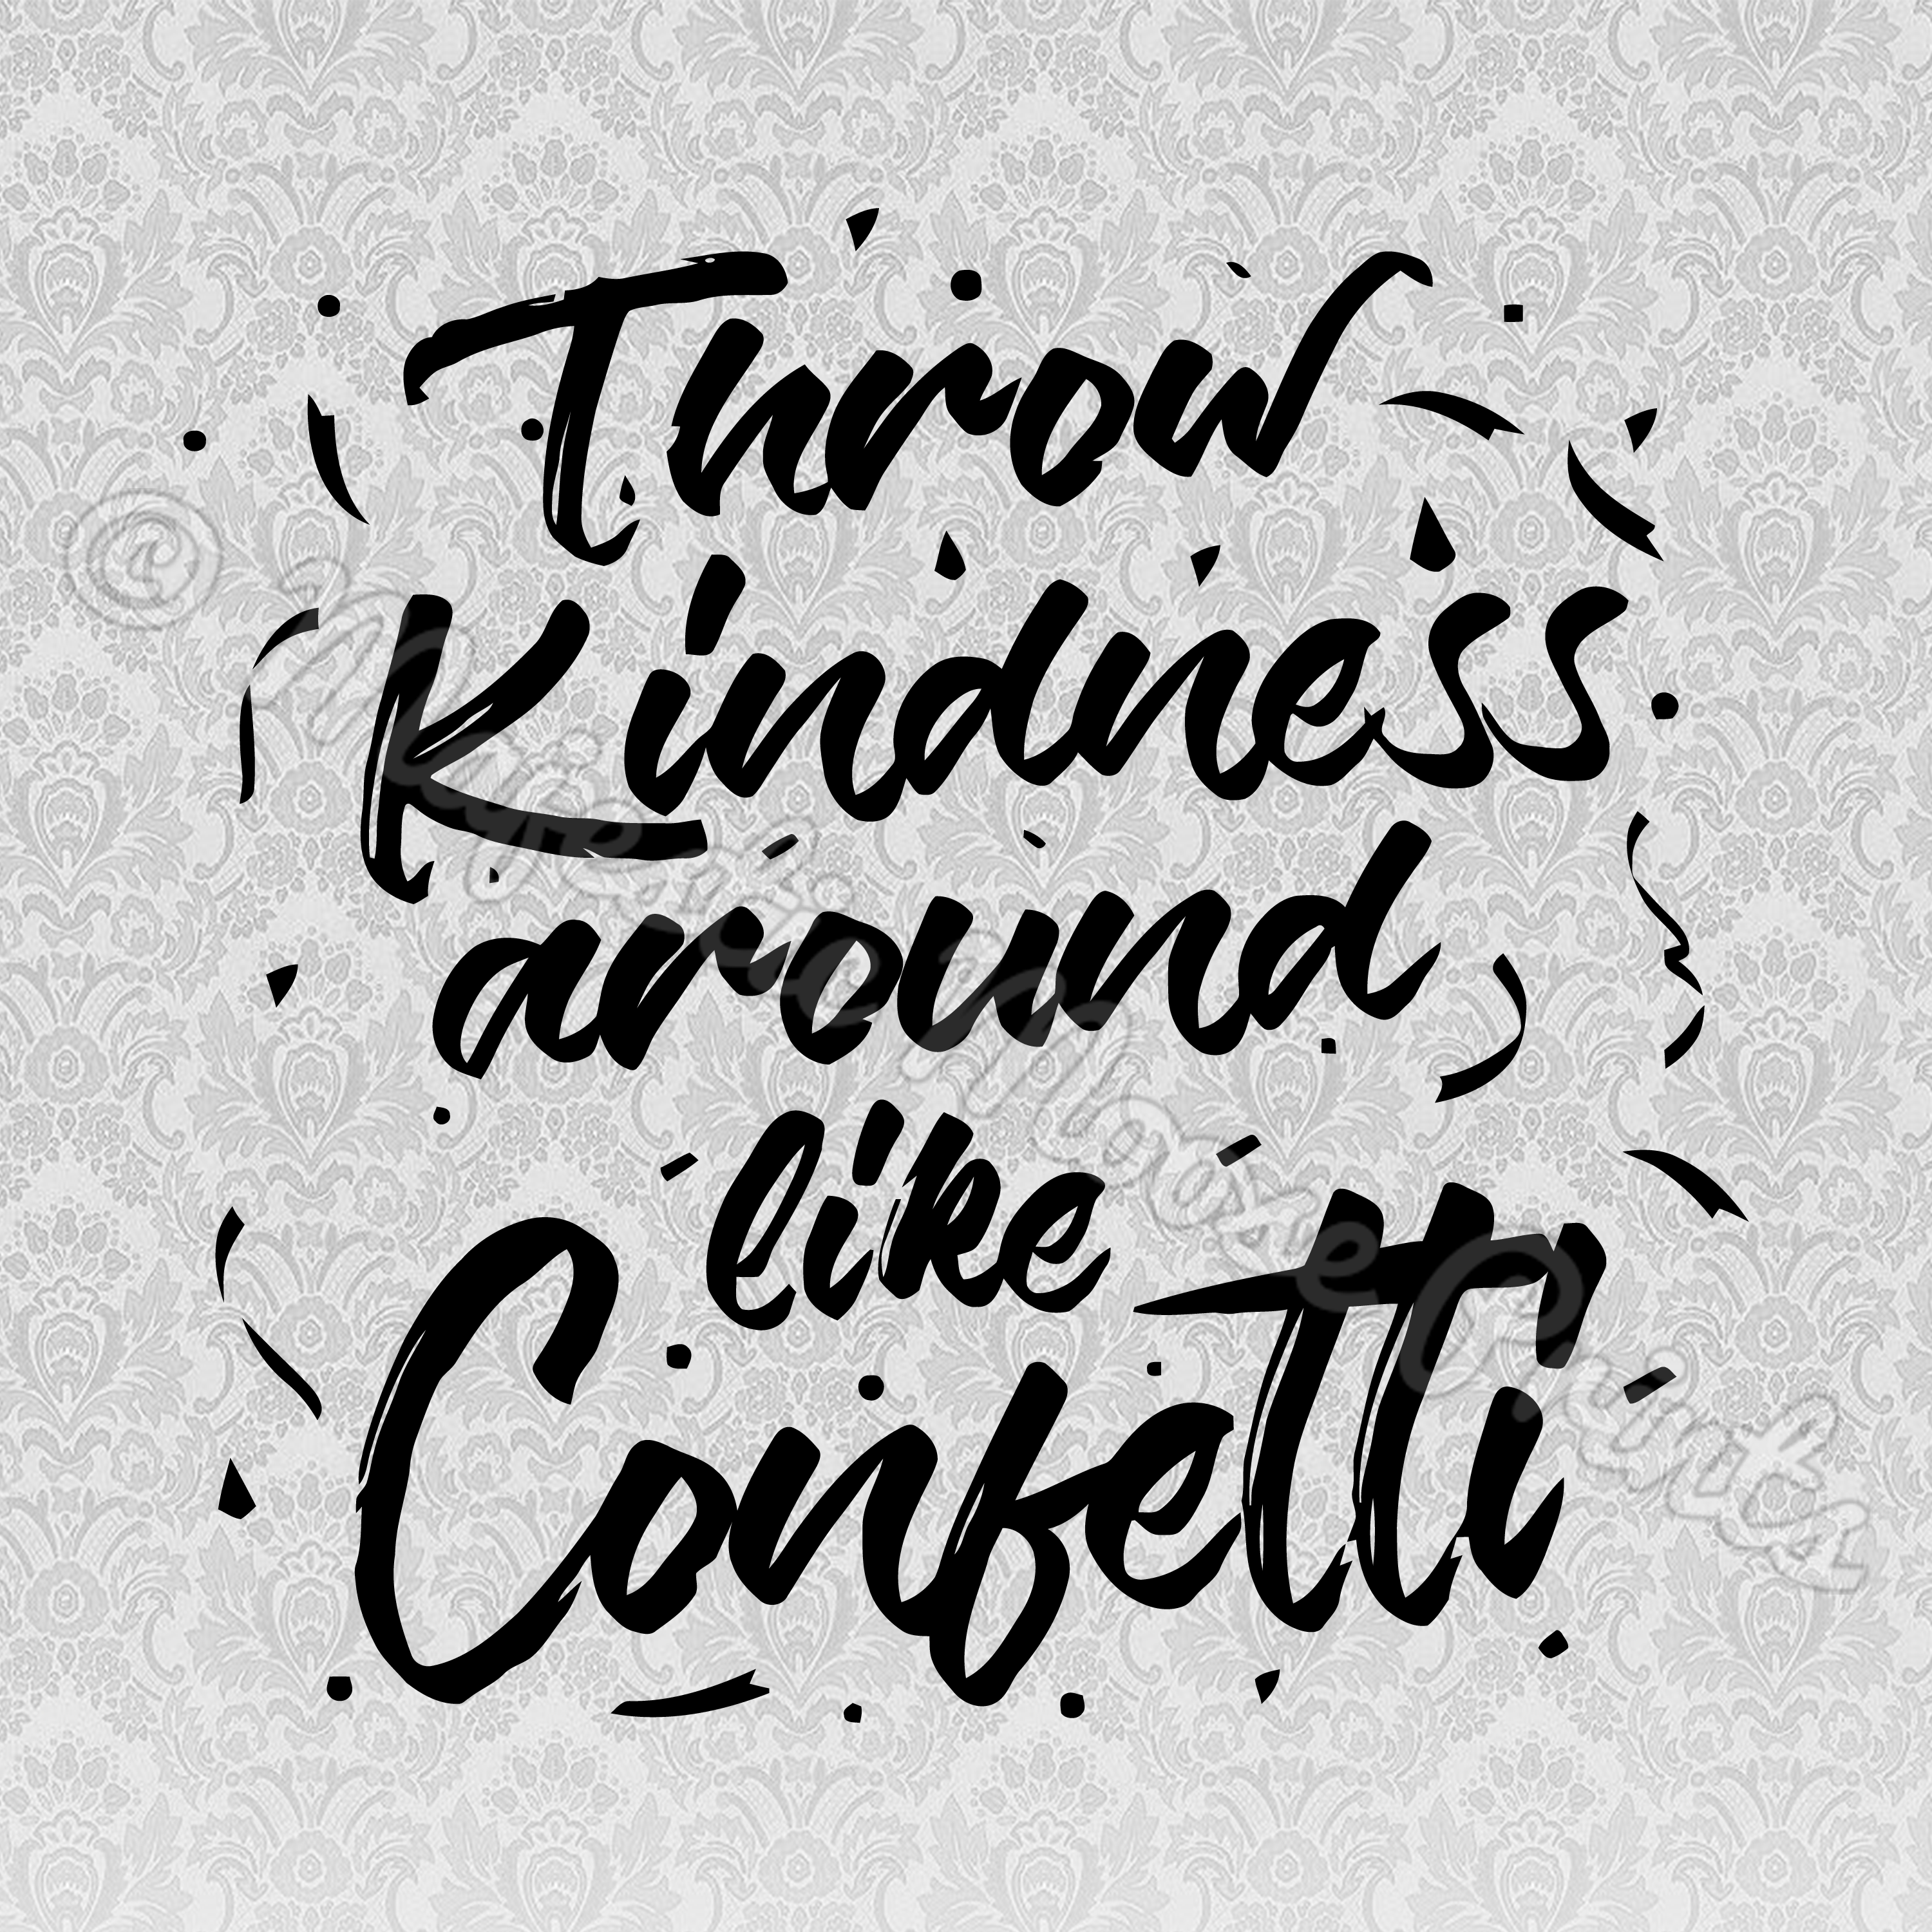 Throw Kindness Around Like Confetti SVG / Cut File / Clipart.